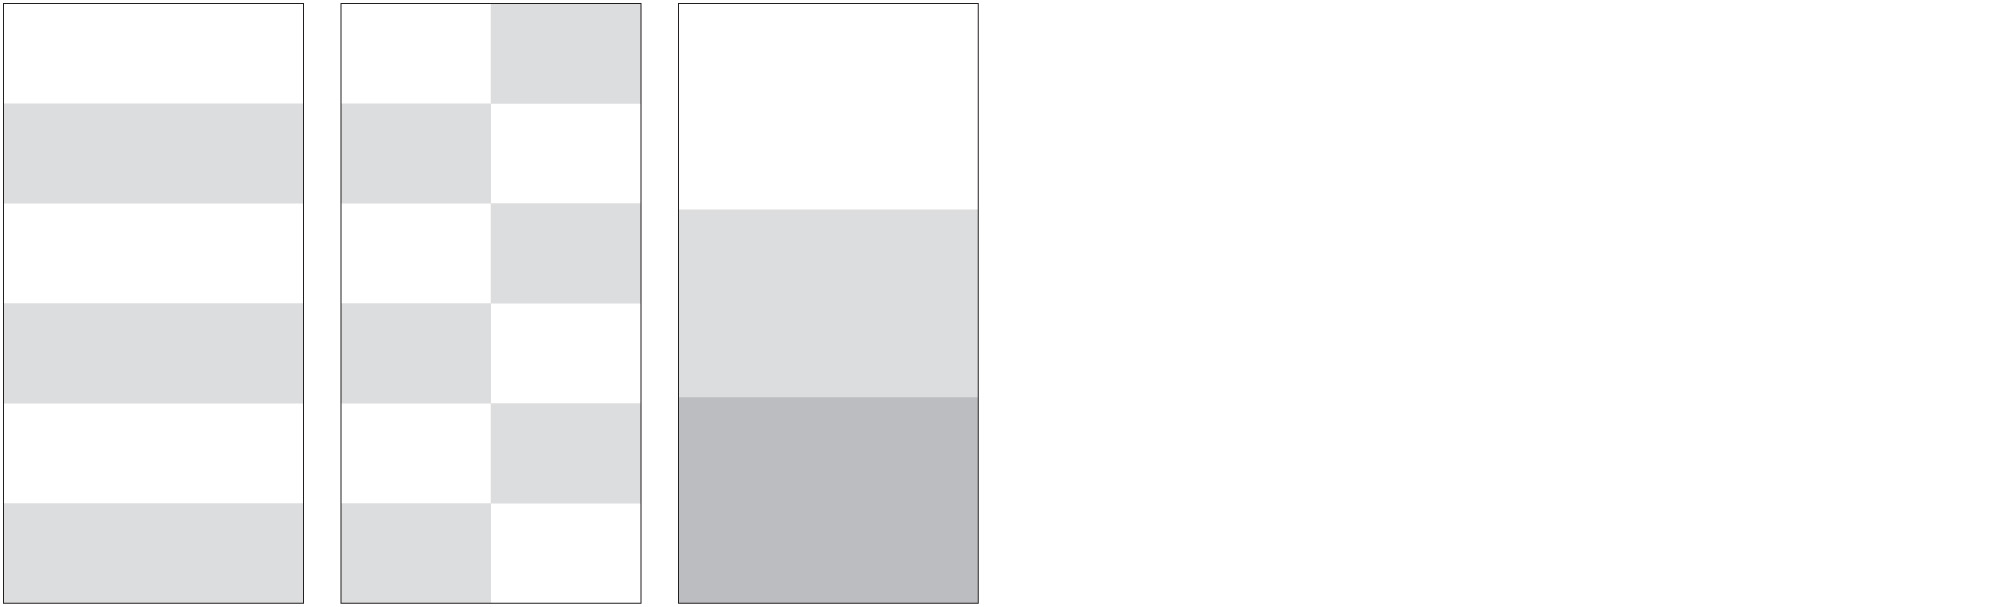 """Standard Layout BICOLOR, CHECK, TRICOLOR (108"""" height by full width panels)"""